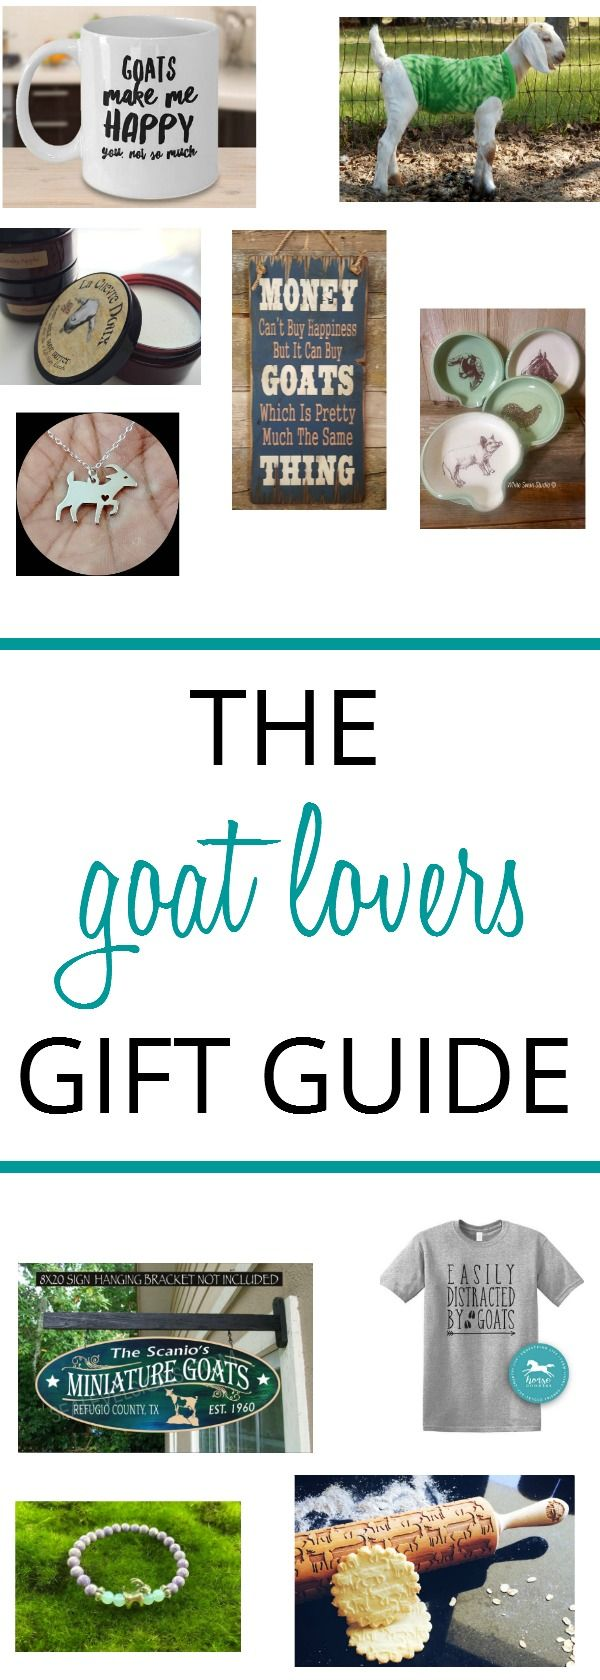 Find my go to list of goat lovers gift ideas that any goat love will treasure. Fun, quirky and even practical and all are handmade quality gifts! 2017gift guide via @SLcountrygal